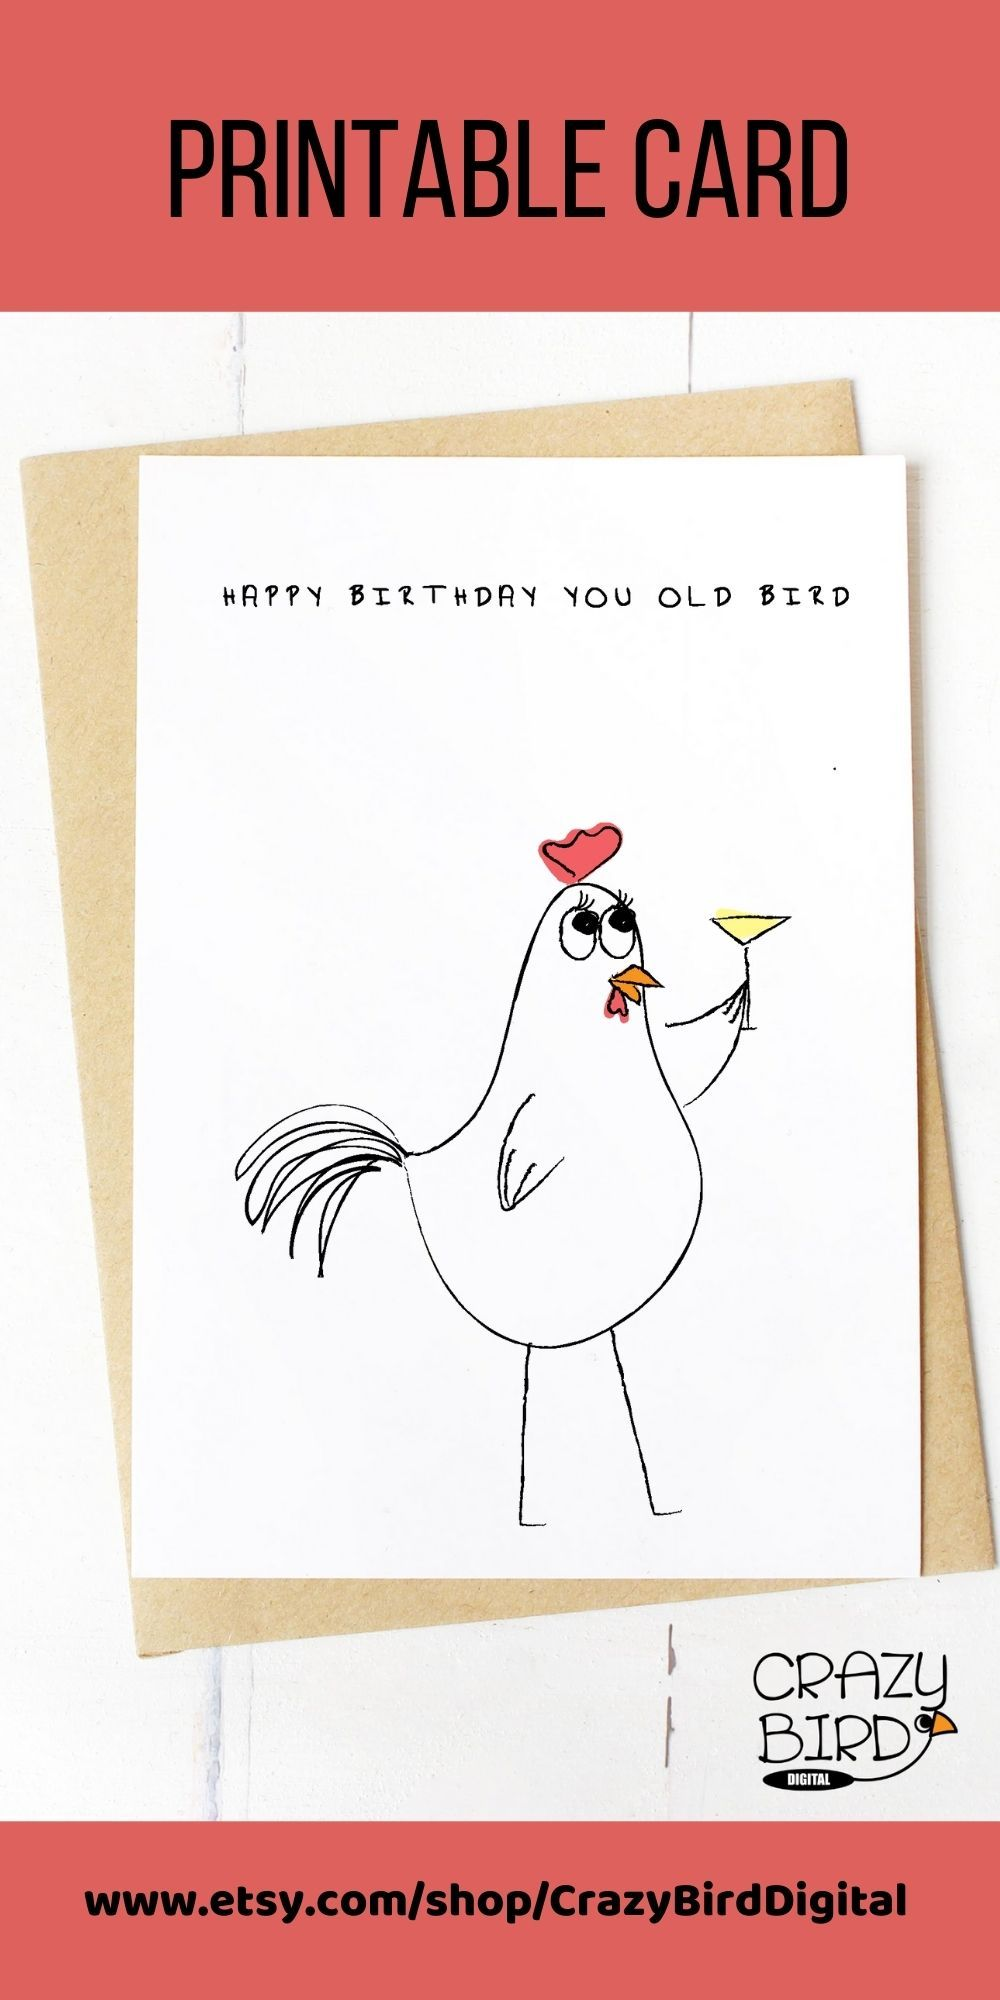 Birthday Card For Her Funny Birthday Card For Best Etsy Birthday Cards For Friends Funny Printable Birthday Cards Birthday Card Printable